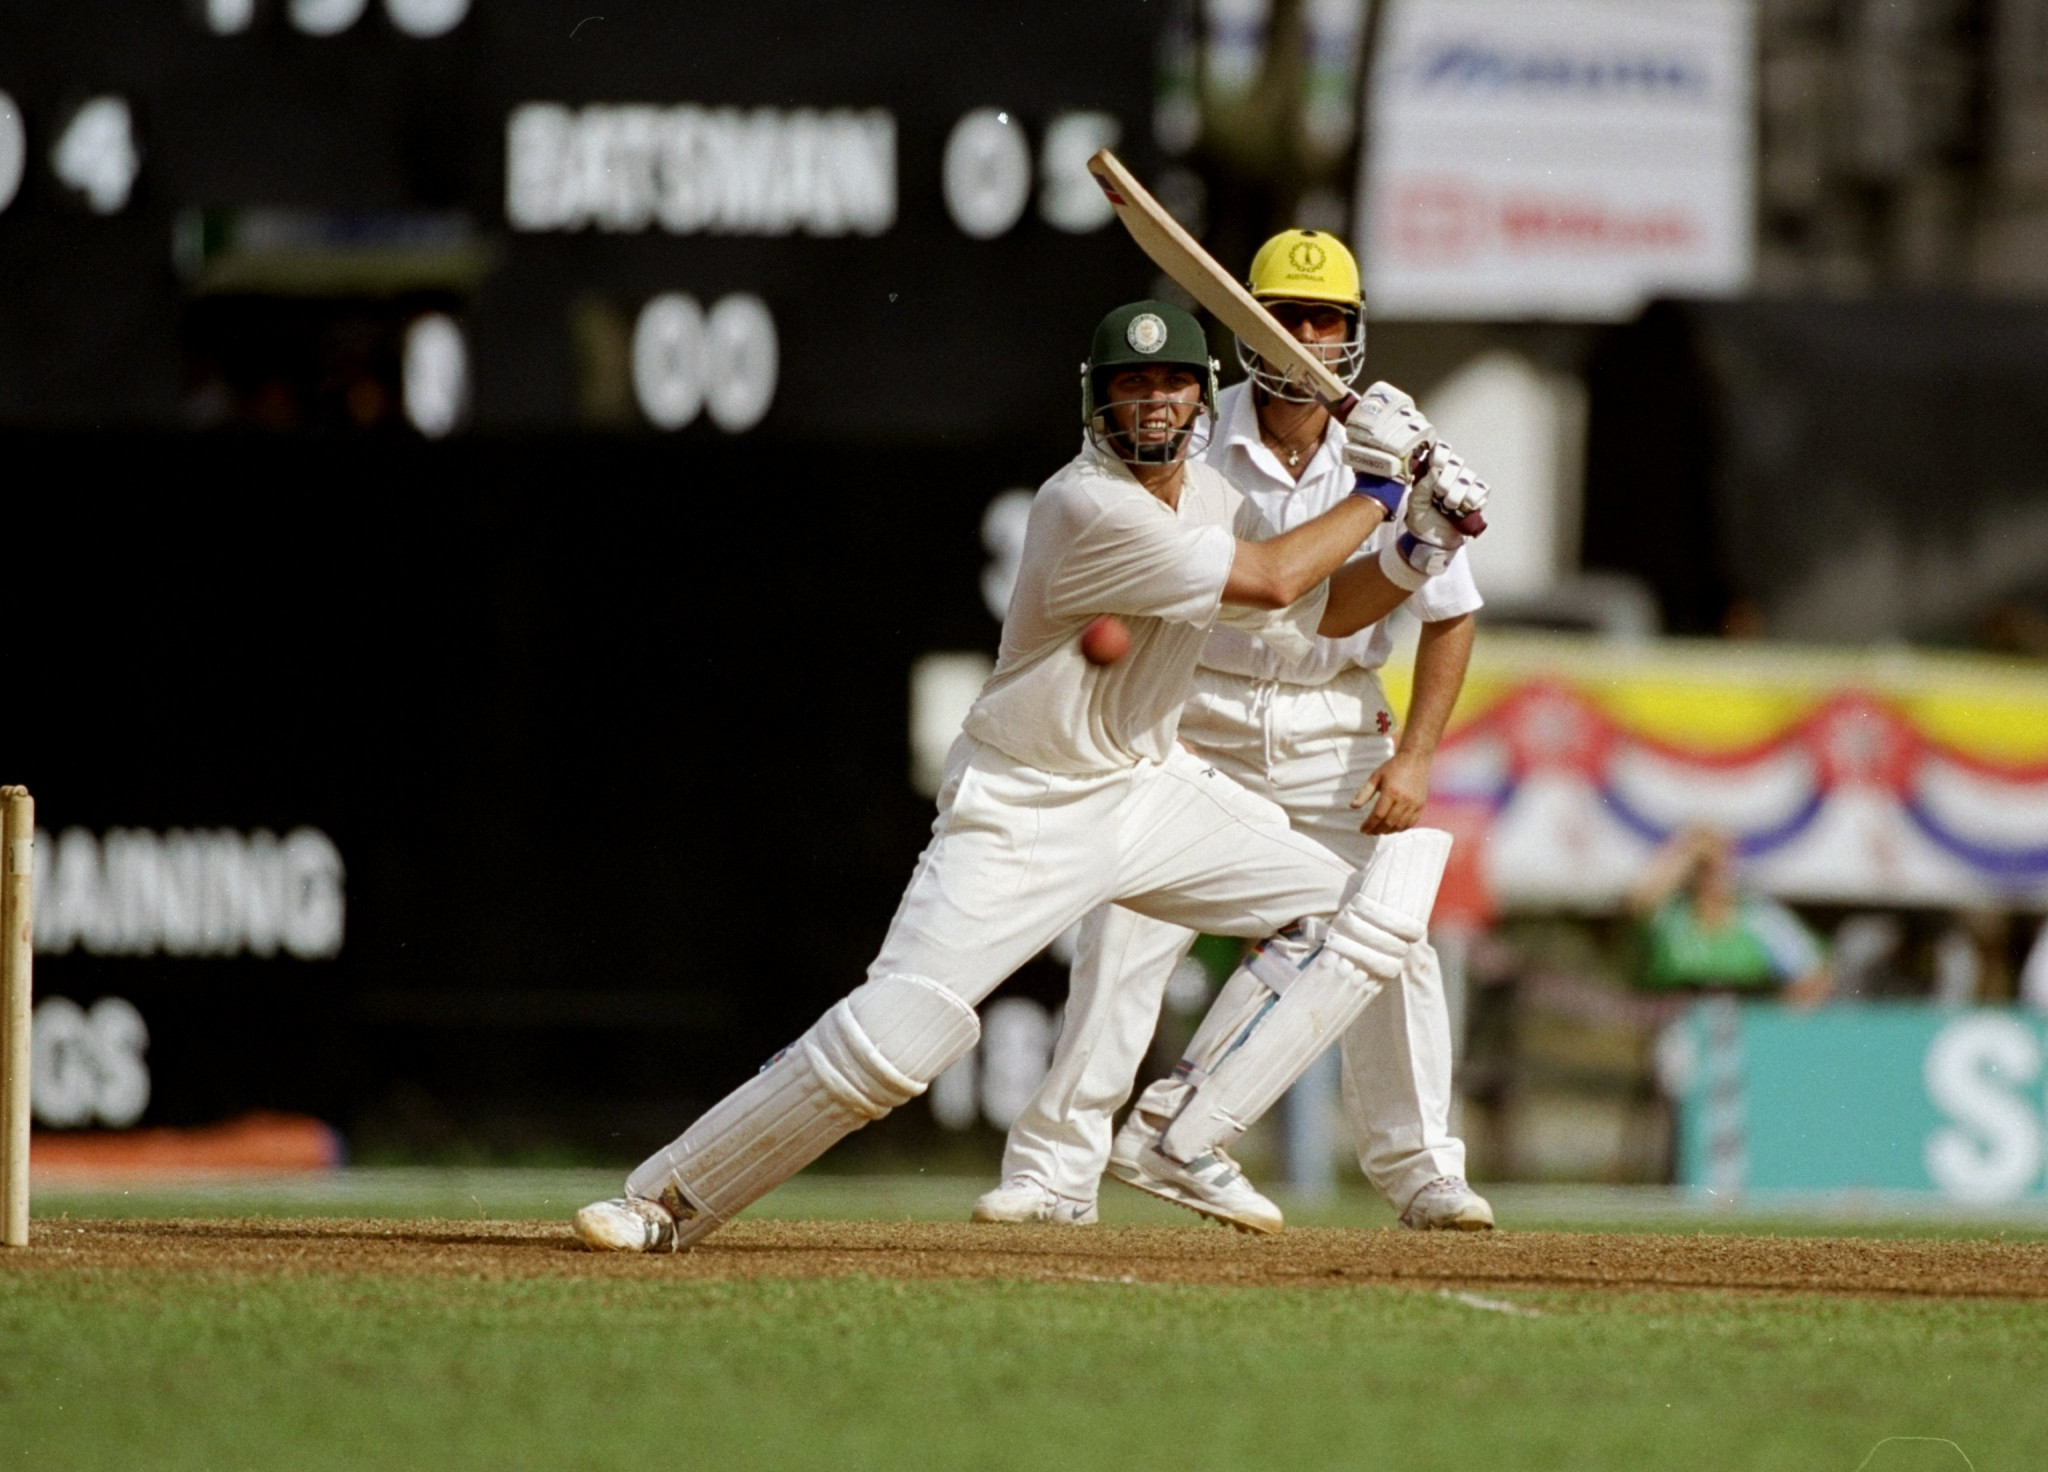 Jacques Kallis scored 44 runs when South Africa beat Australia by four wickets to win the gold medal at the 1998 Commonwealth Games in Kuala Lumpur - the only other time cricket has appeared ©Getty Images